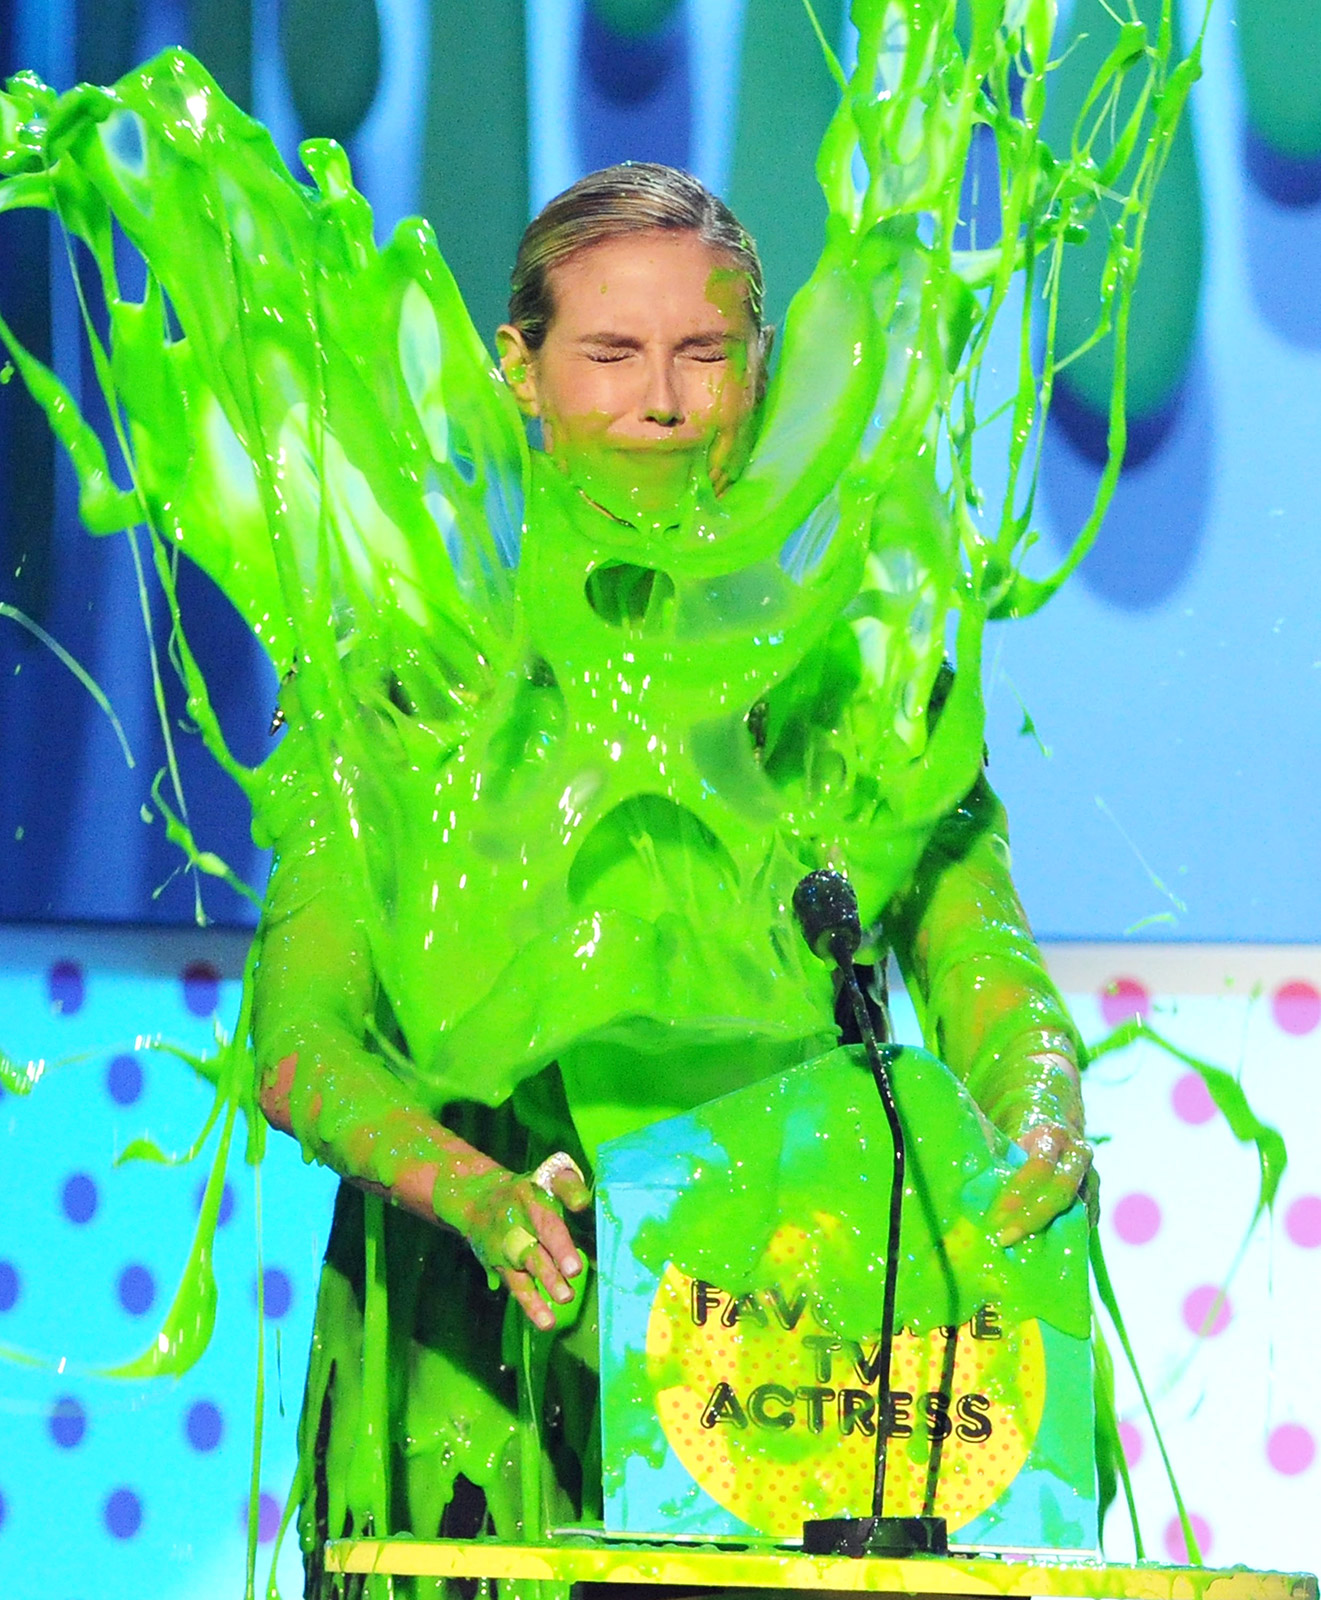 The German supermodel only managed to say a few words before a jack-in-the-box sprayed her with slime at the Galen Center in L.A. on Apr. 2, 2011. Co-presenter Nick Cannon laughed at Klum and announced Selena Gomez had won the award for Favorite TV Actress.